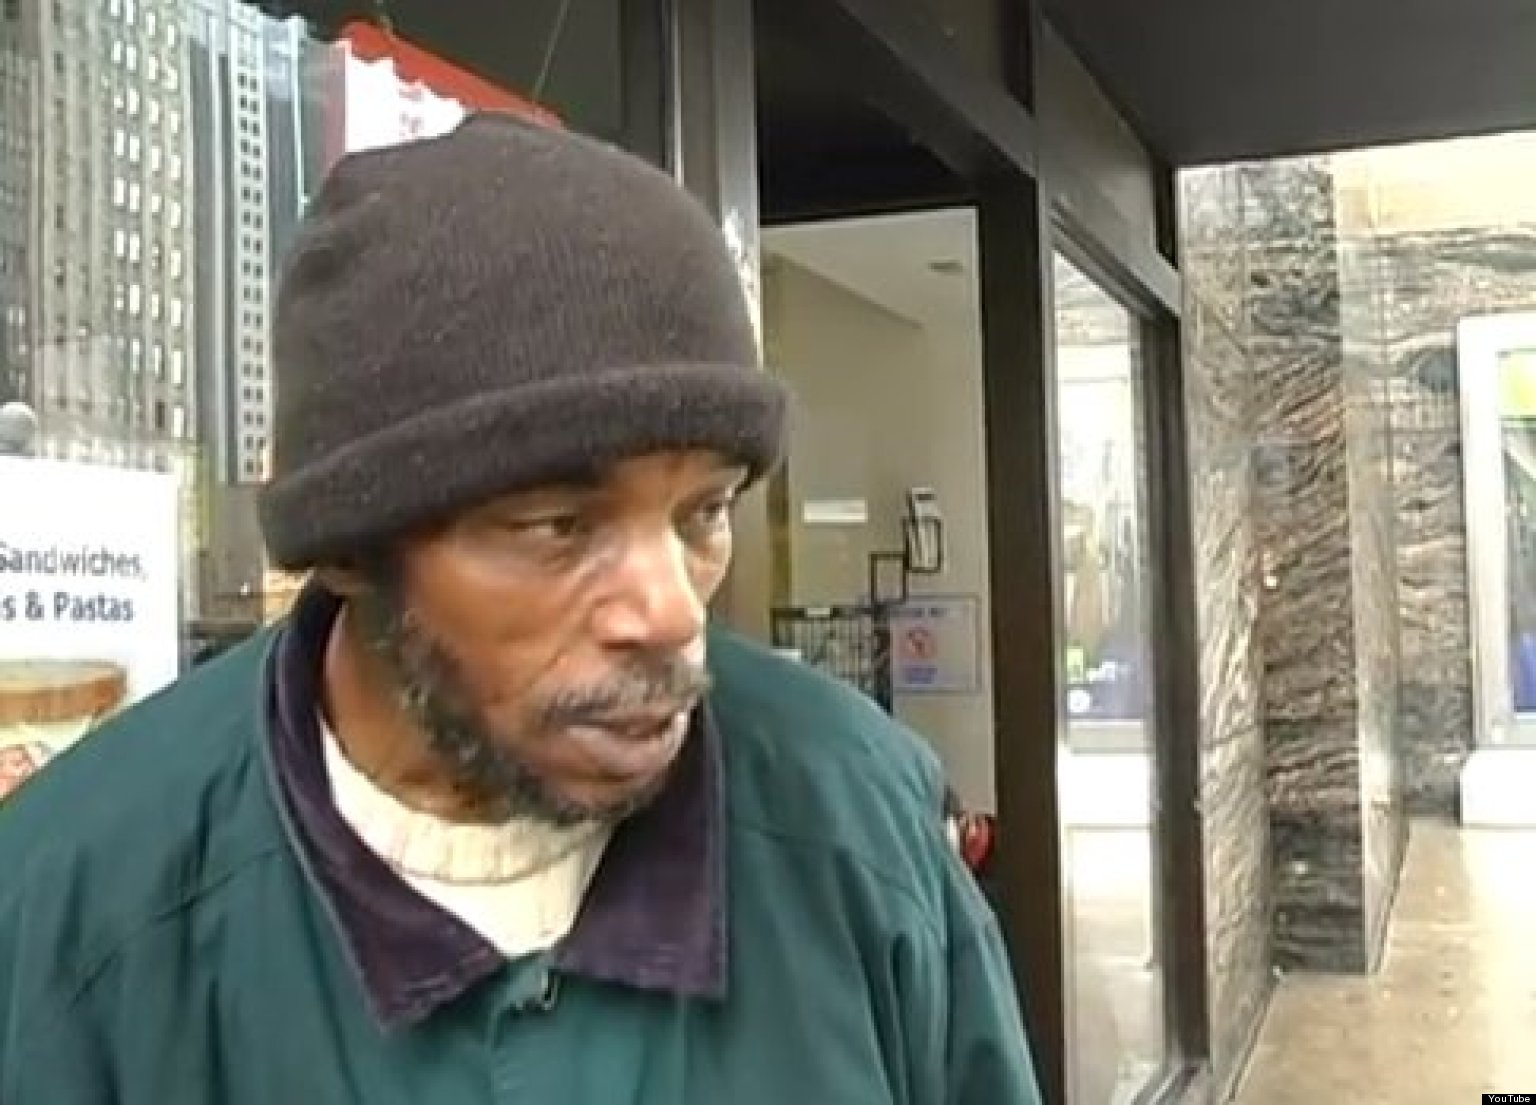 RONALD-DAVIS-HOMELESS-CHICAGO